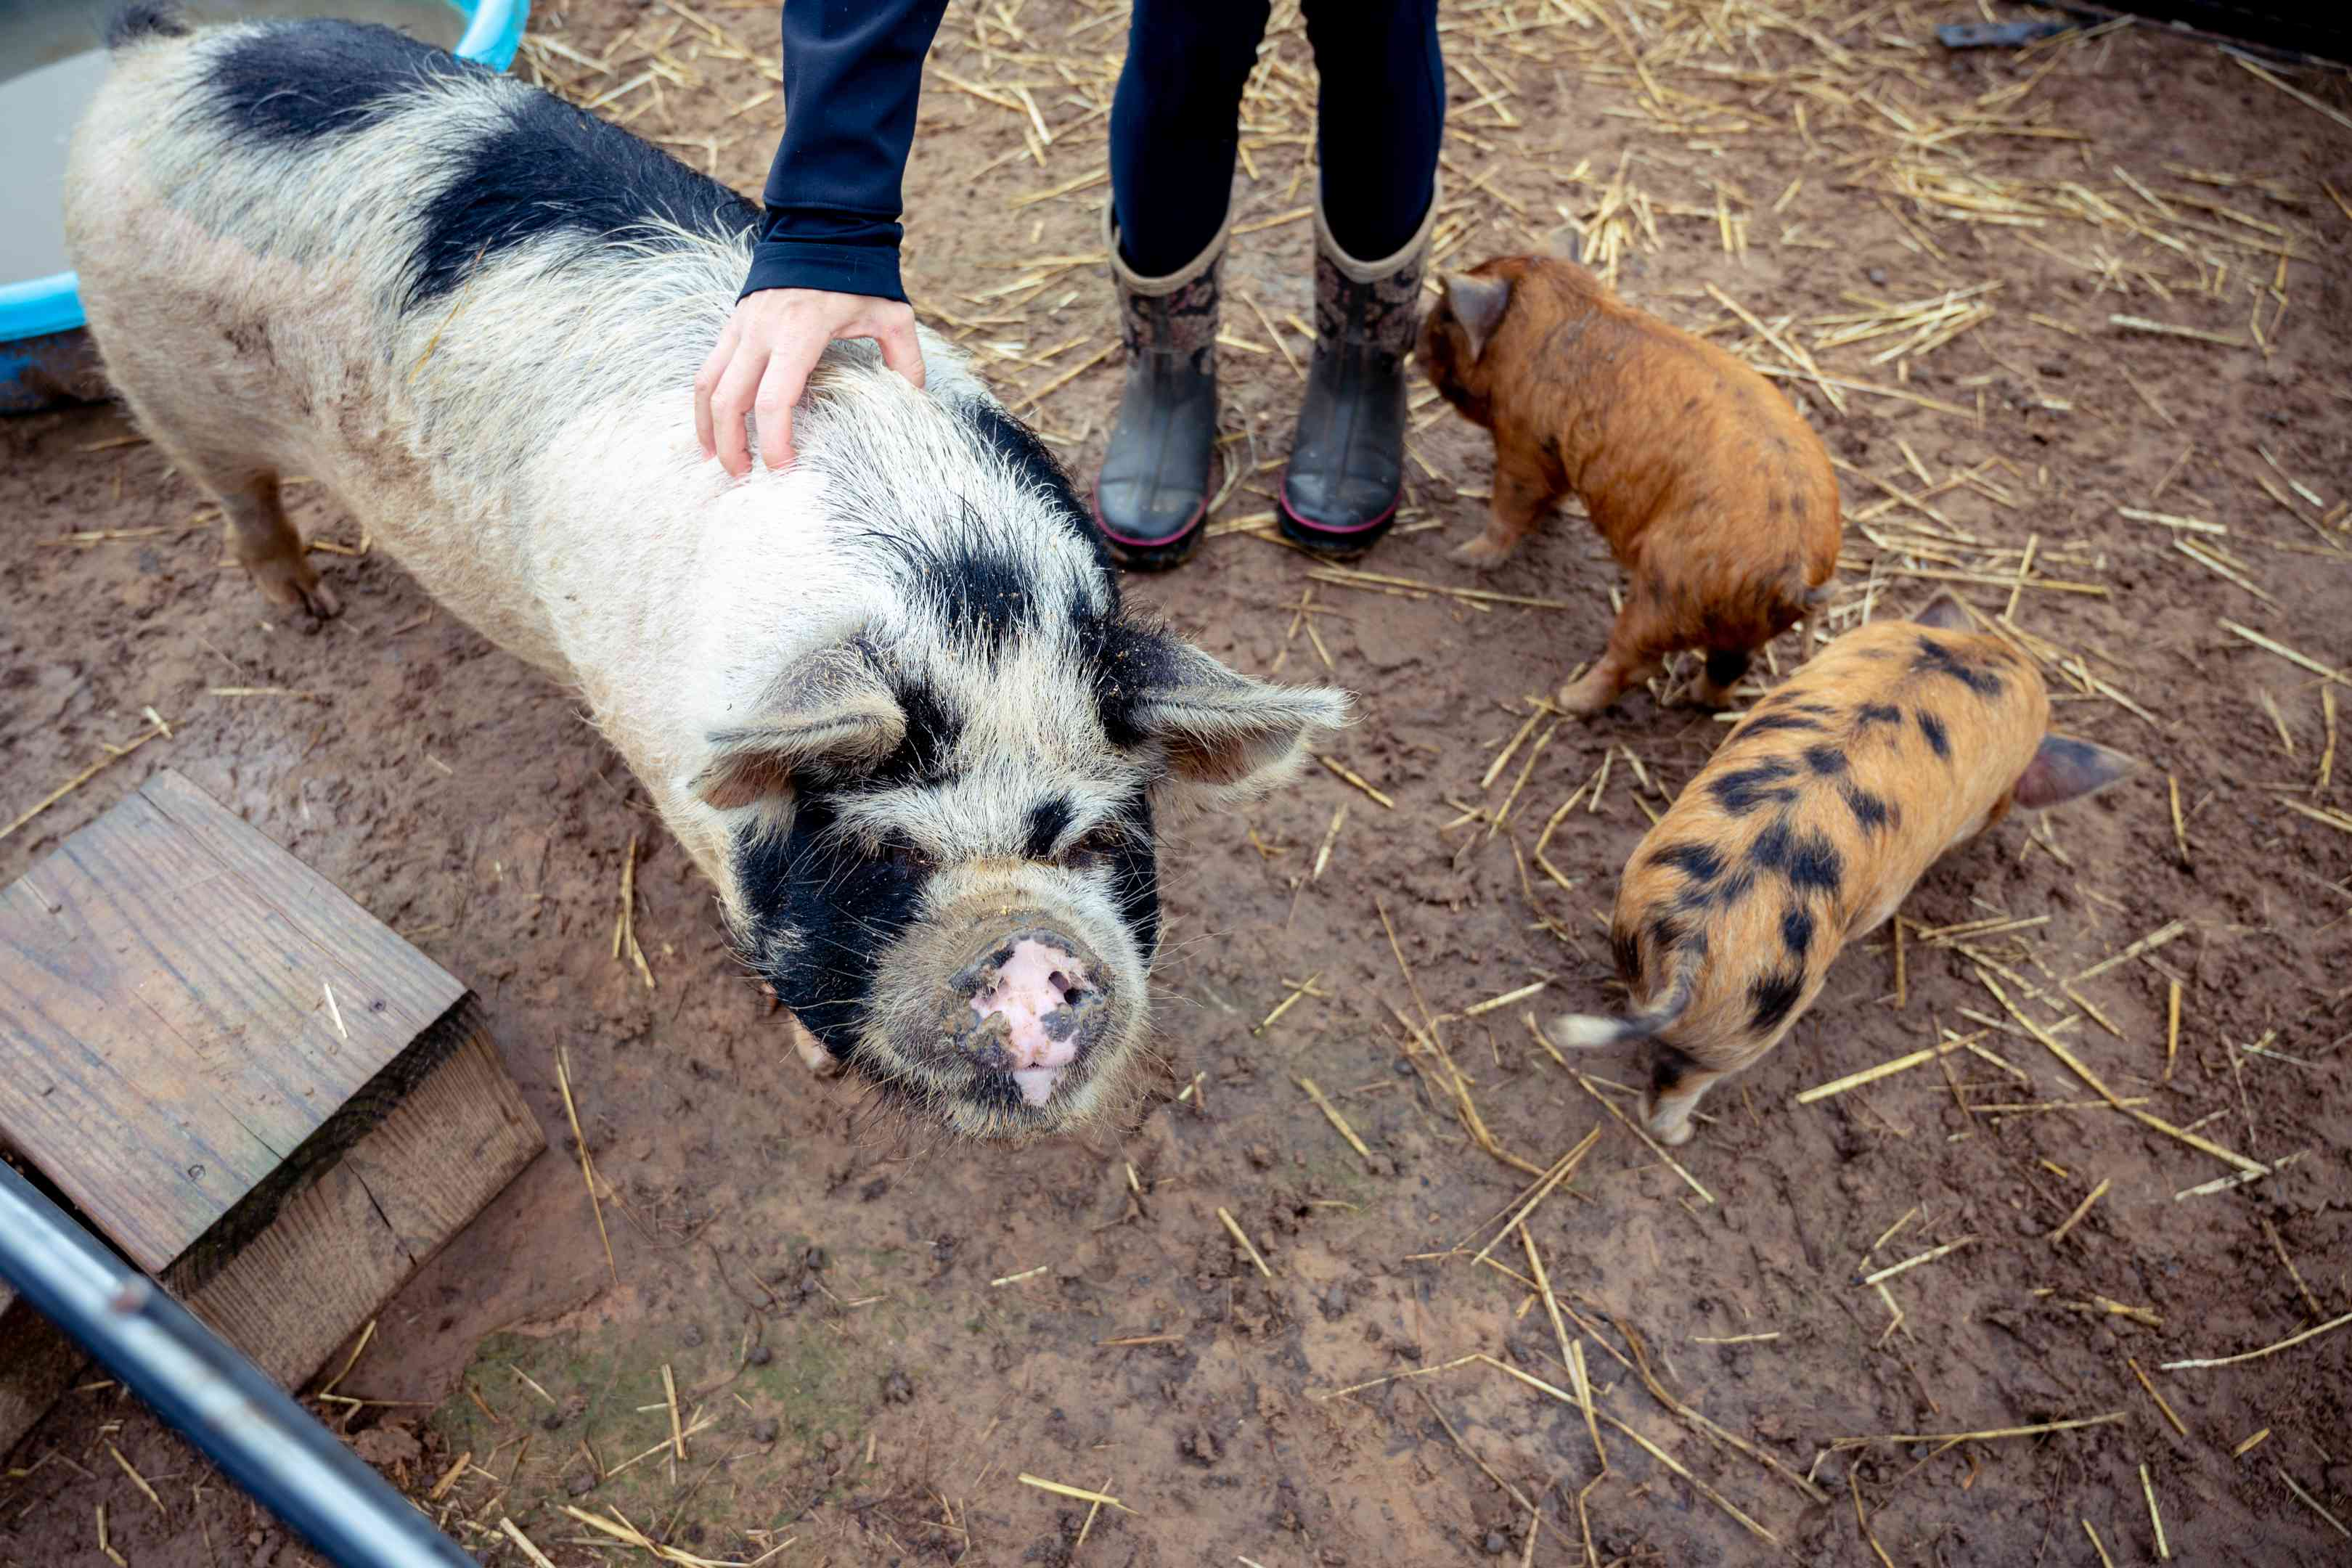 person pets mama pig while baby pigs nose around in muddy straw pit